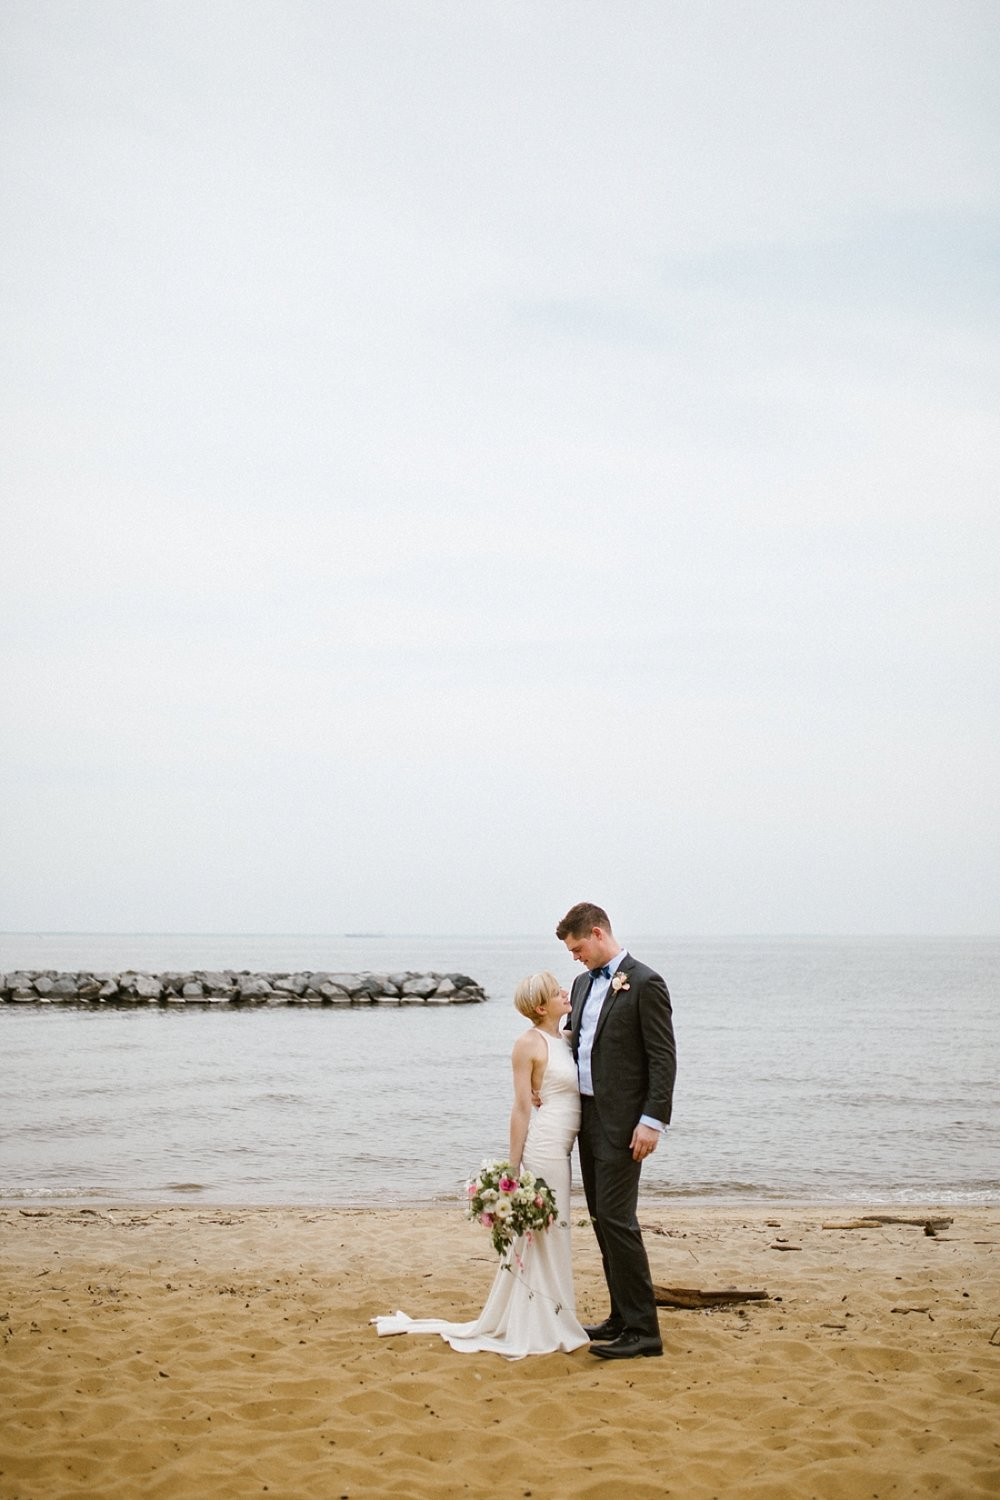 Marryland Weddings Earthy Neutrals Wedding at Chesapeake Bay Foundation Victoria Selman Photography_1019.jpg